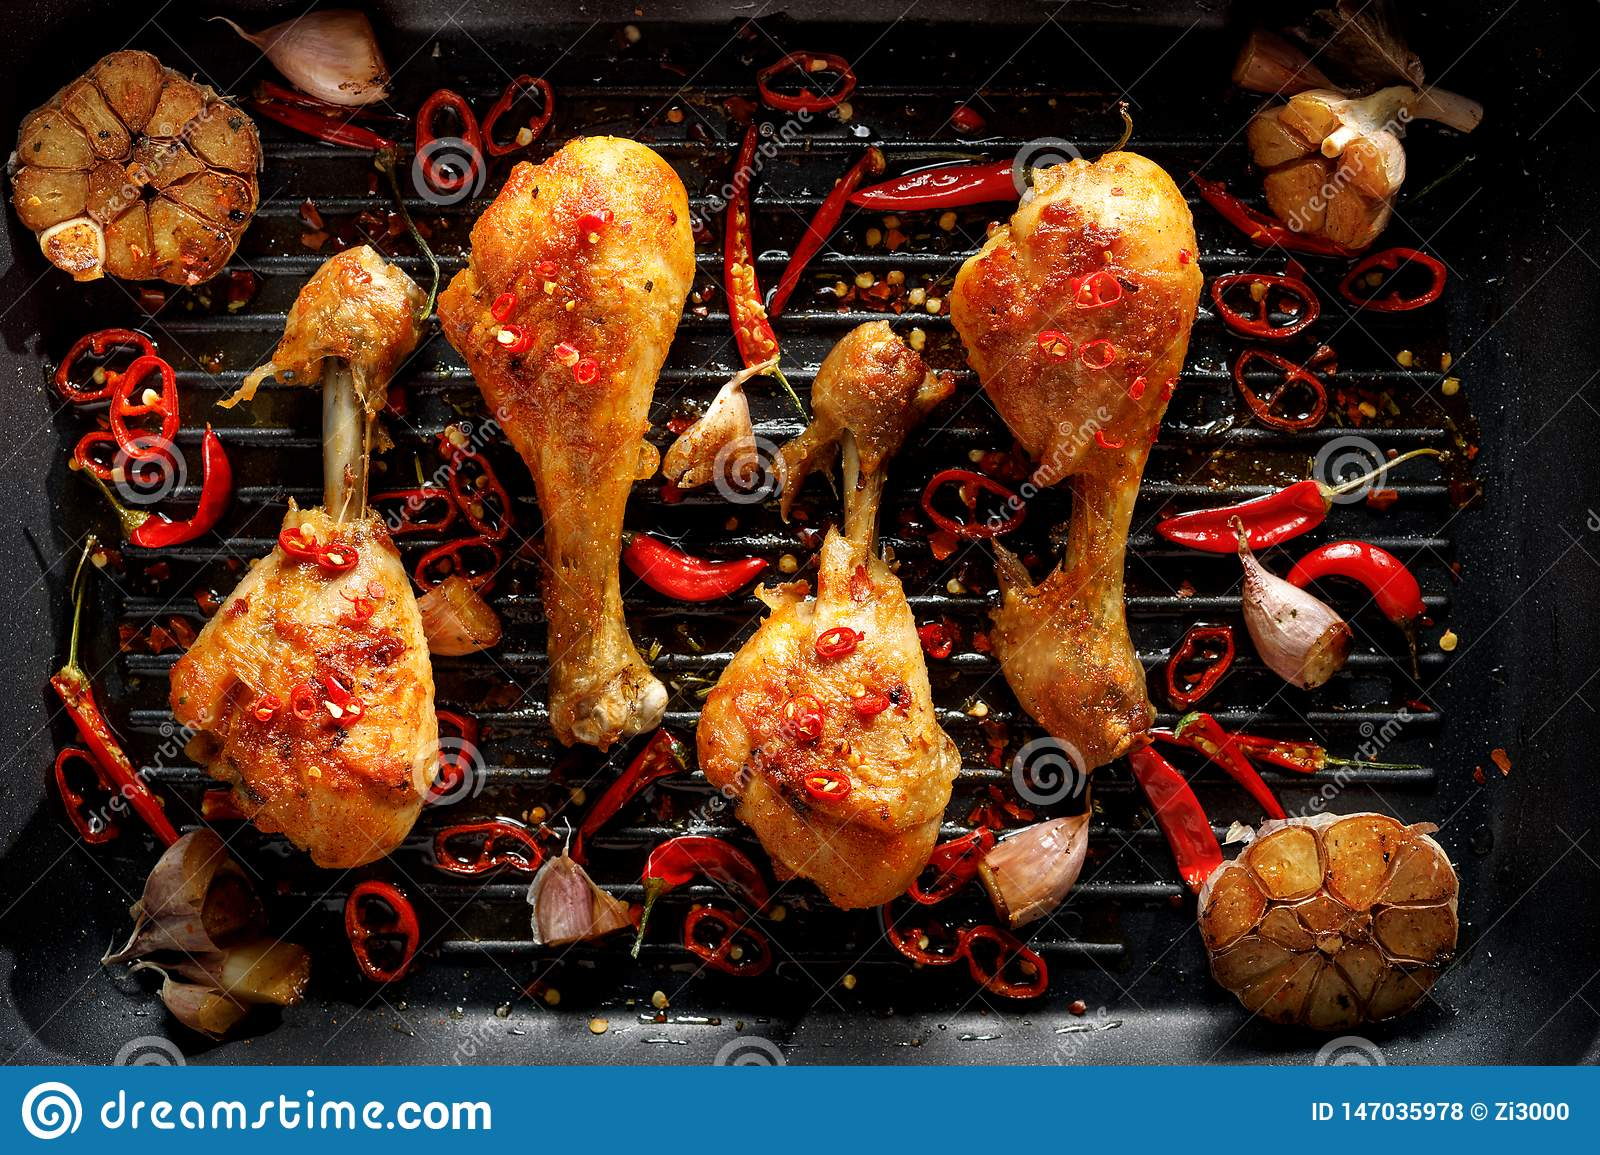 Spicy grilled chicken legs, drumsticks with the addition of chili peppers, garlic and herbs on the grill plate, top view.